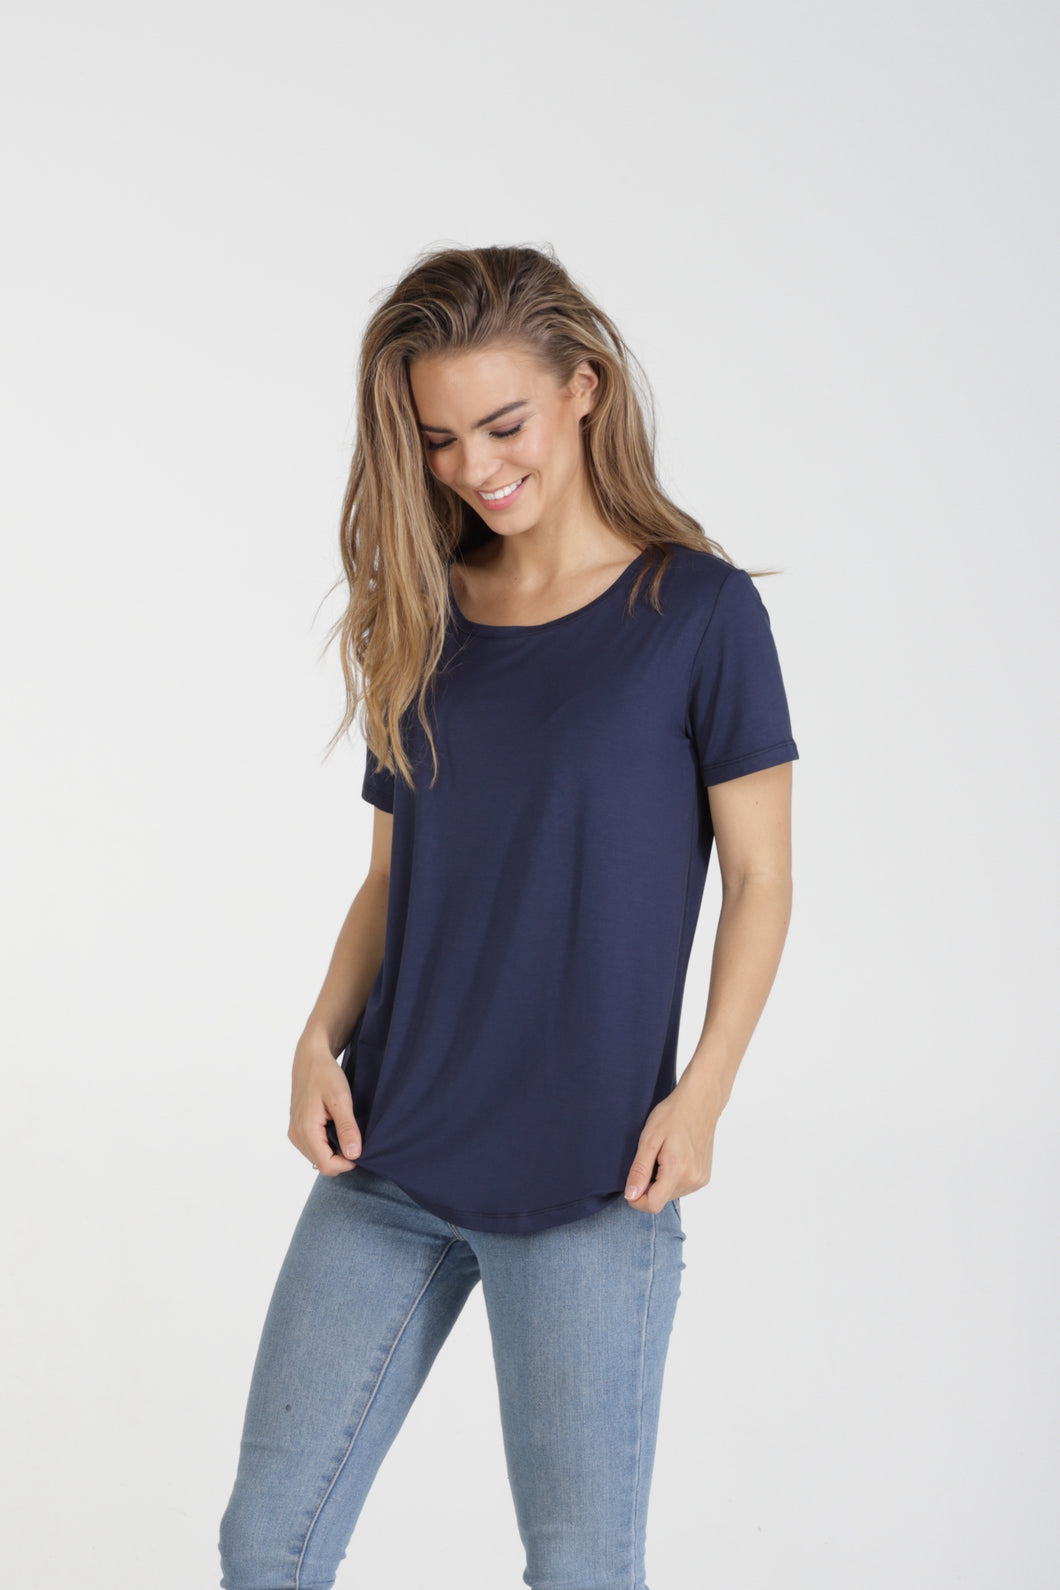 Women's Crew Neck Tee by Naked Store